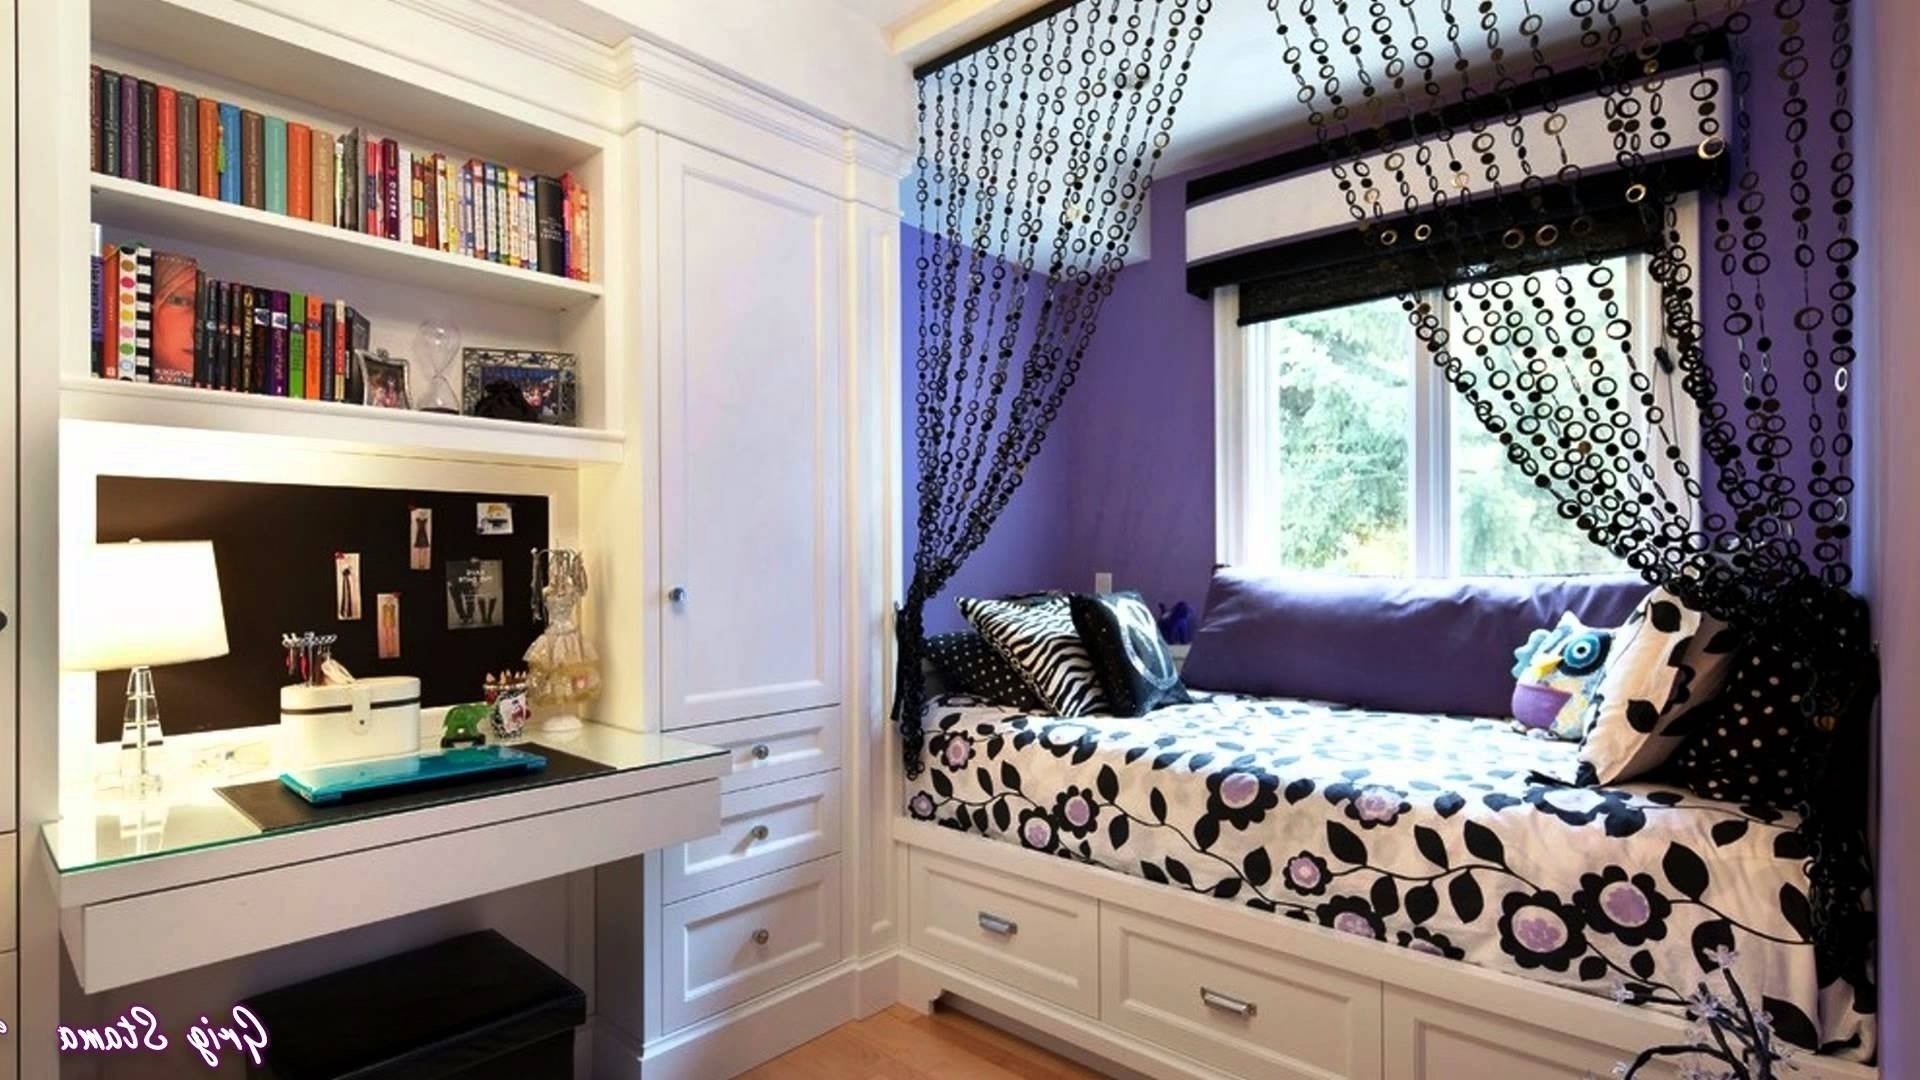 10 Fantastic Room Ideas For Teenage Girls diy teenage girl bedroom ideas internetunblock internetunblock